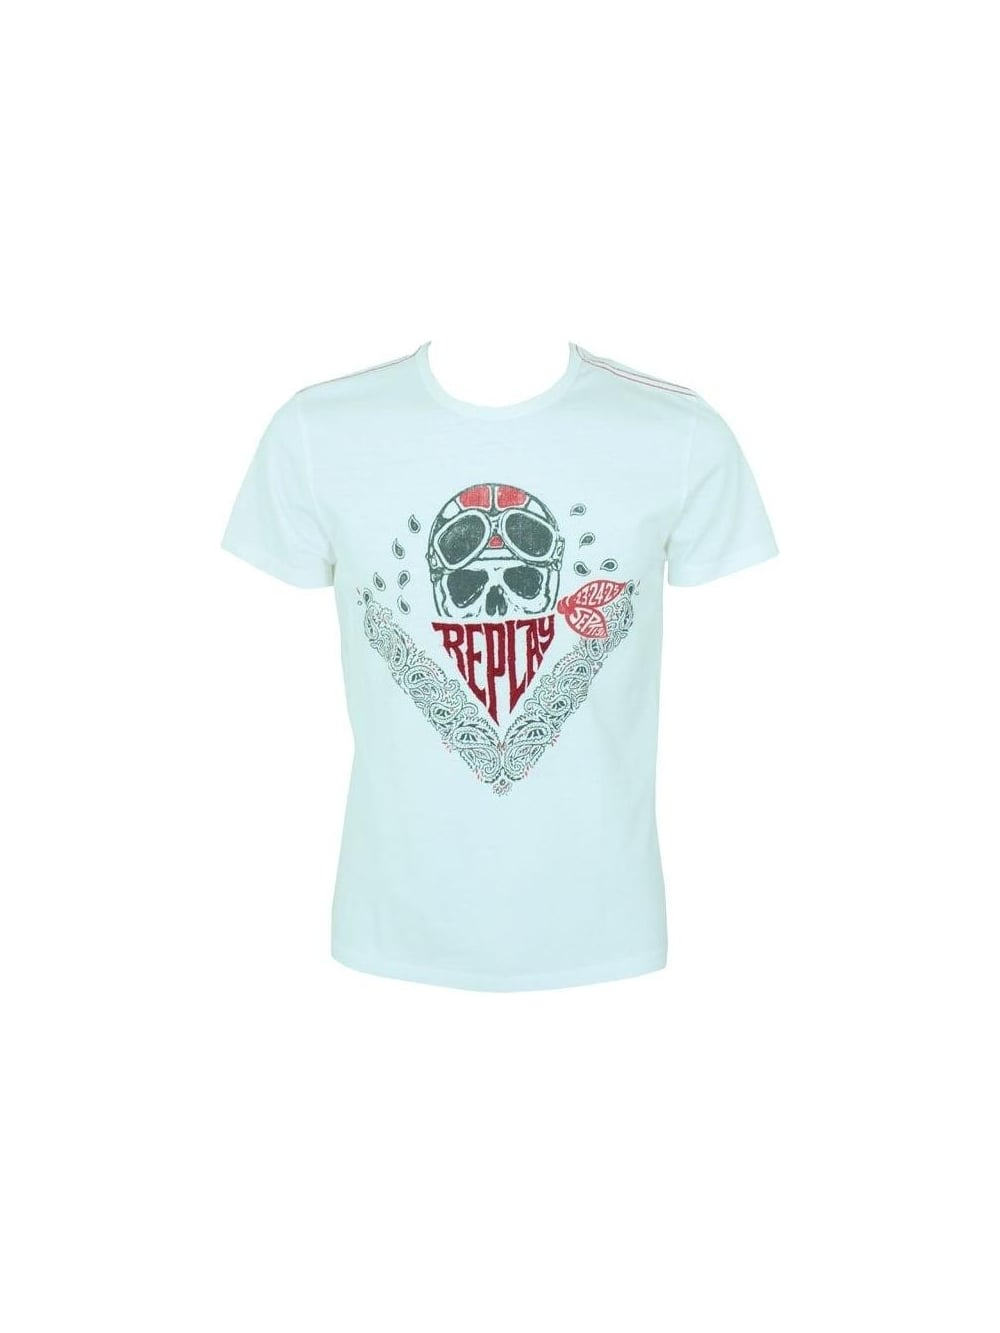 ea5d4babf Buy Replay Skull Print T Shirt in White - Buy Replay at Northern Threads